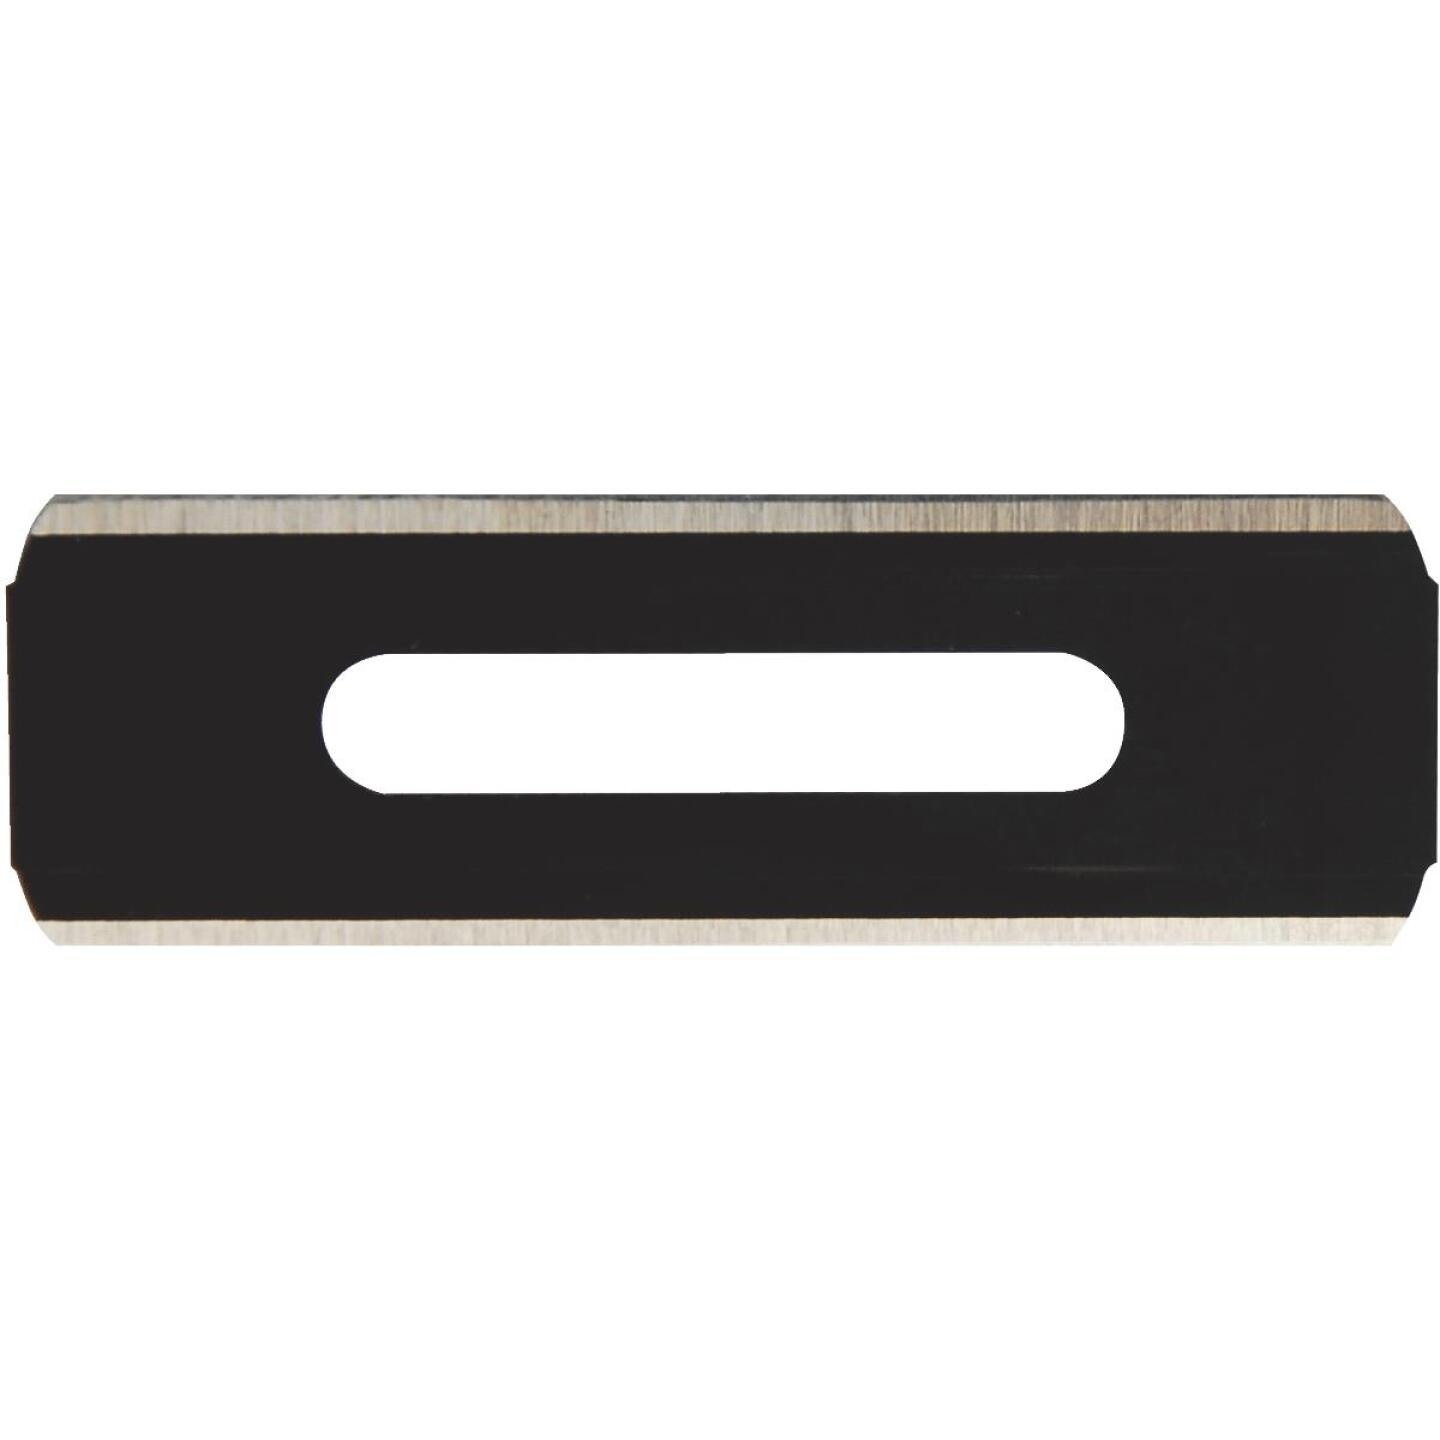 Roberts Heavy-Duty Double Edge Slotted 2-1/4 In. Utility Knife Blade (10-Pack) Image 1